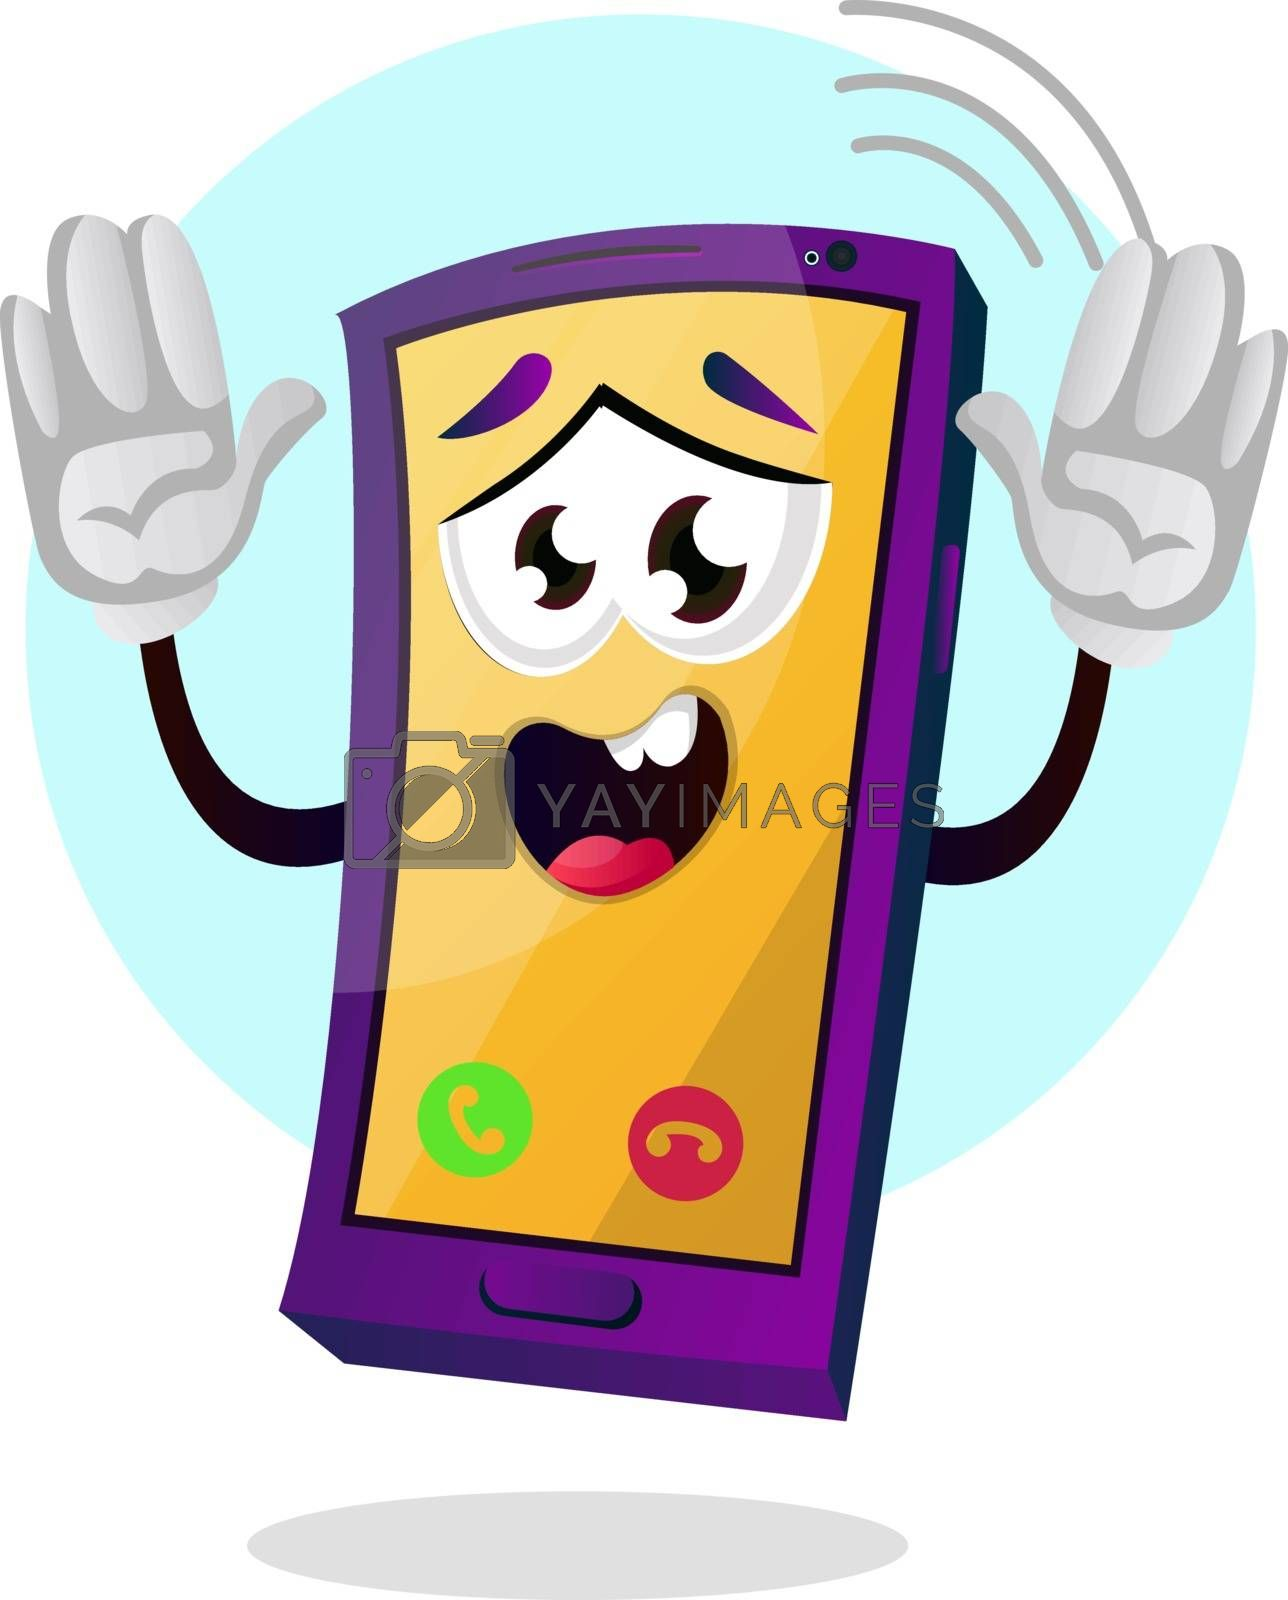 Royalty free image of Yellow mobile emoji with hands up illustration vector on white b by Morphart